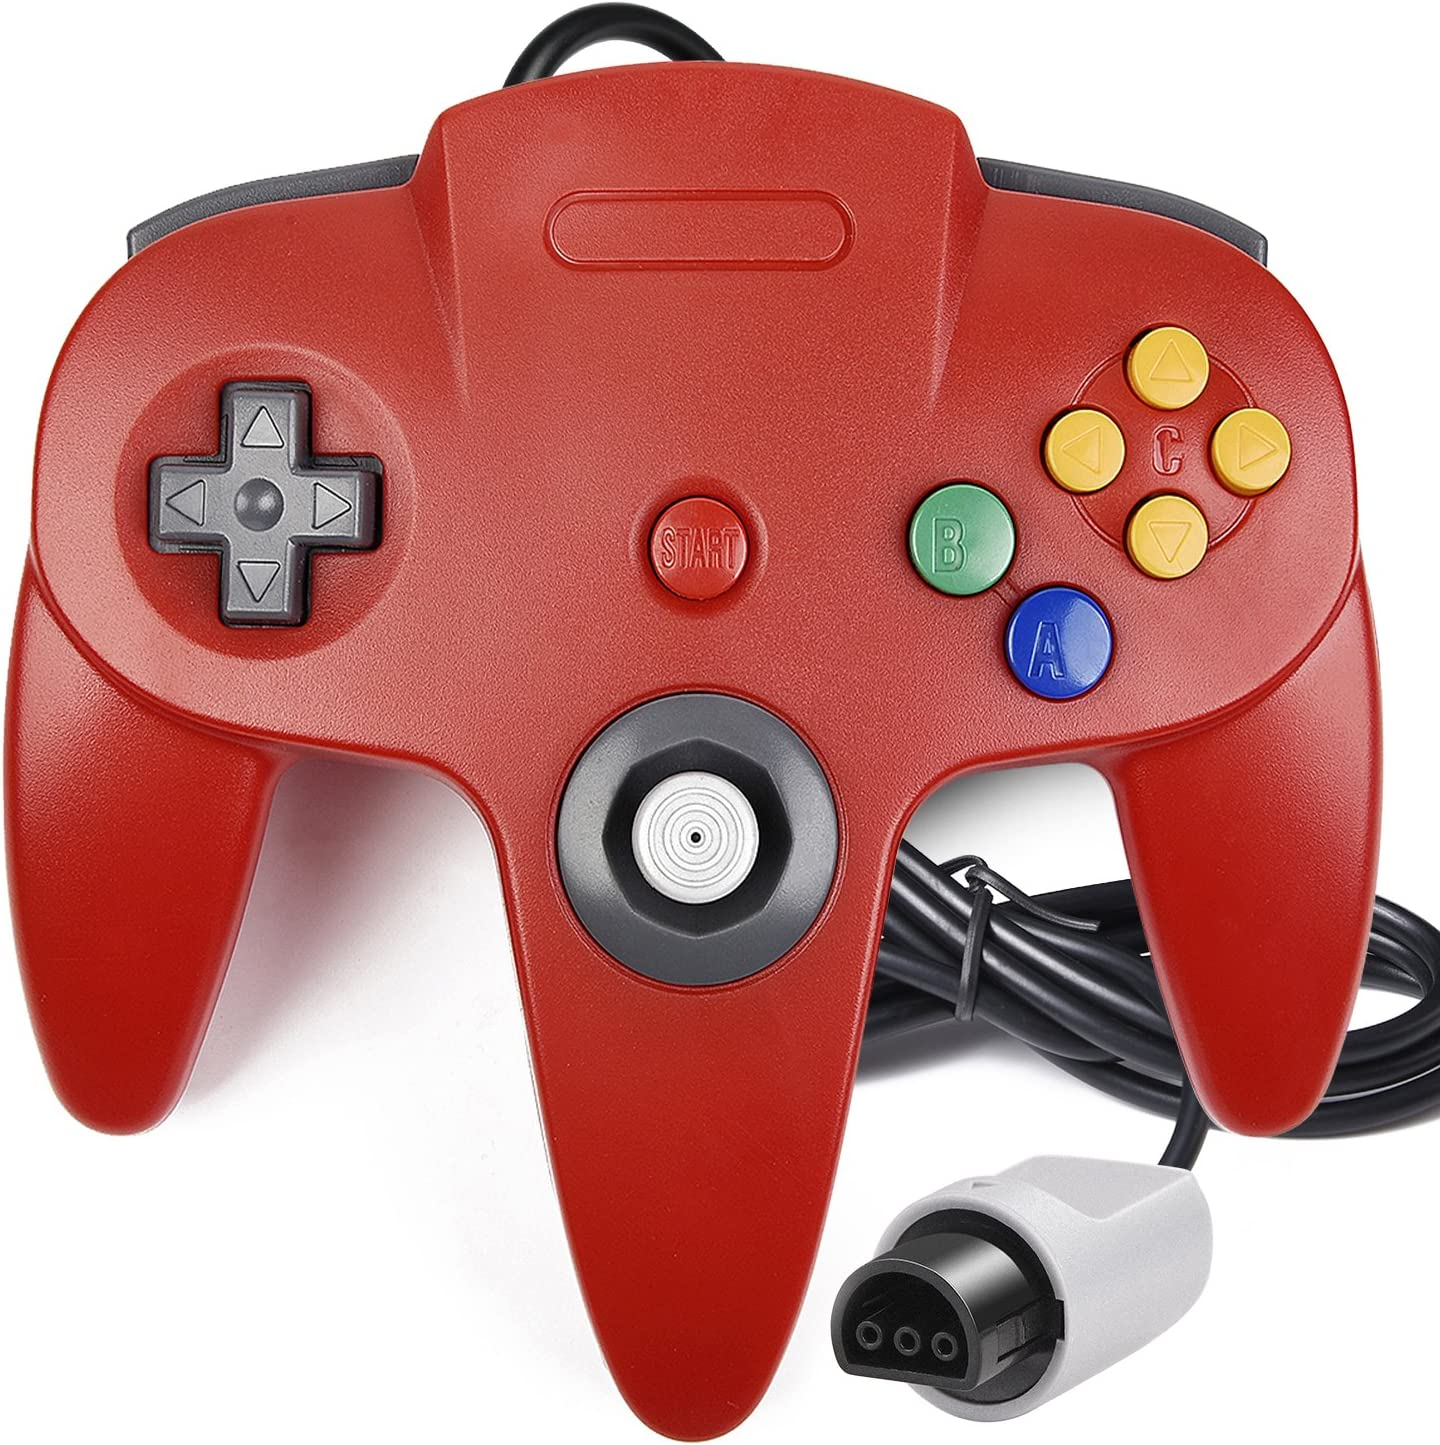 iNNEXT Classic Wired N64 64-bit Gamepad Joystick for Ultra 64 Video Game Console N64 System Mario Kart 2 Pack N64 Controller Red